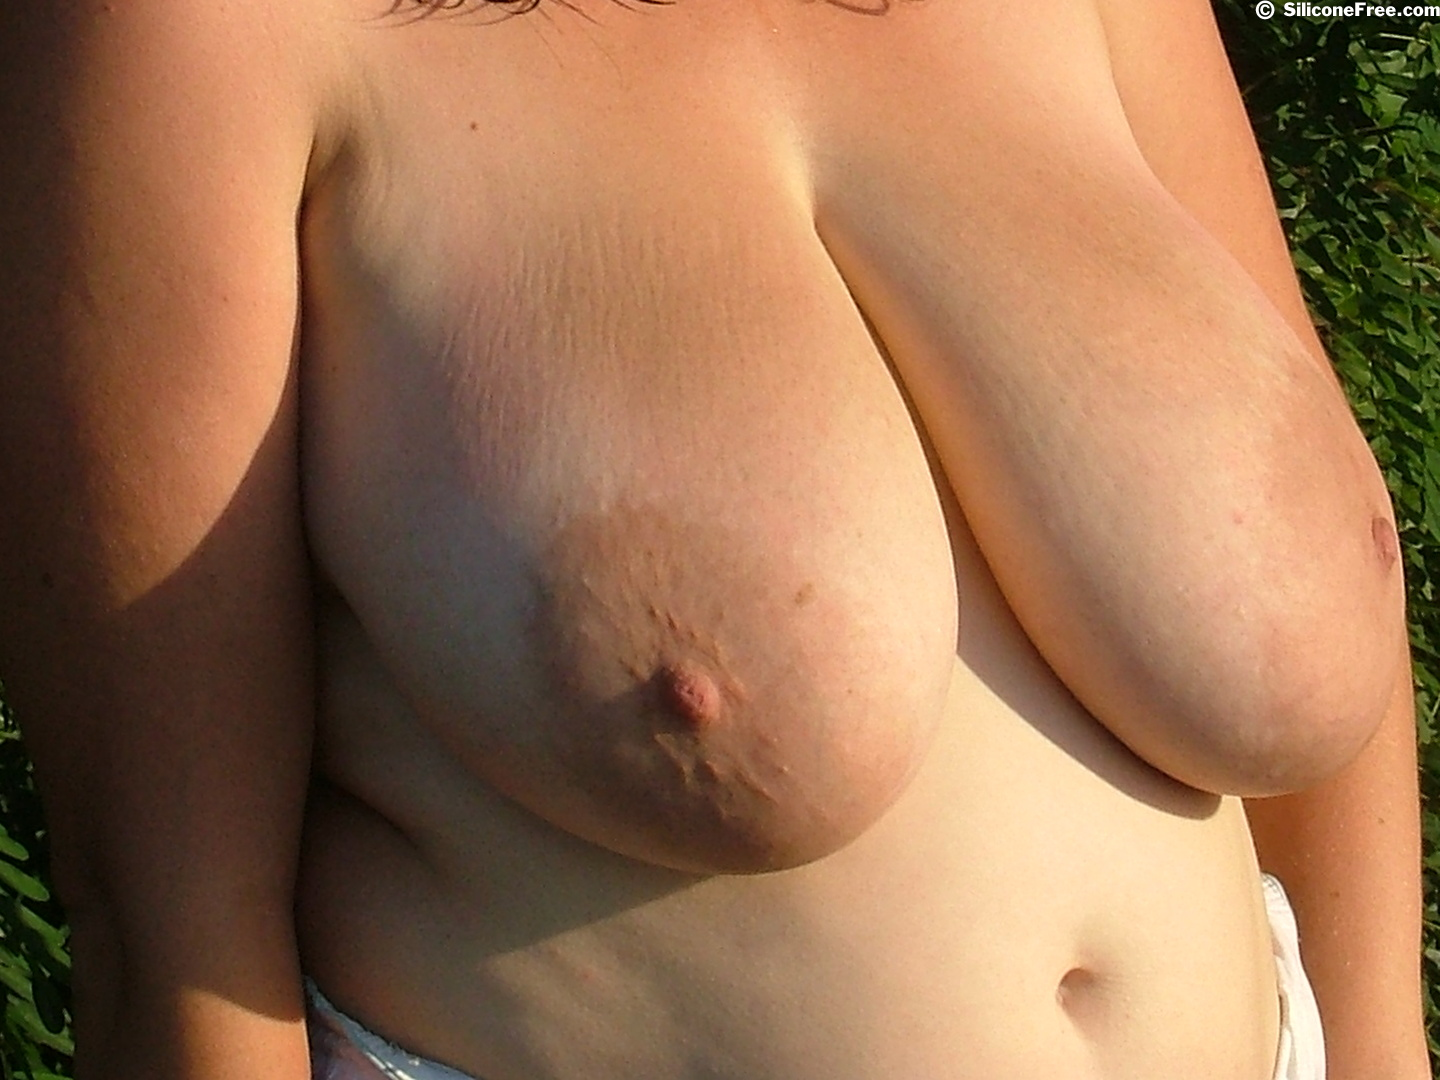 Marvellous tits showcase for perfect angel and her amazing face